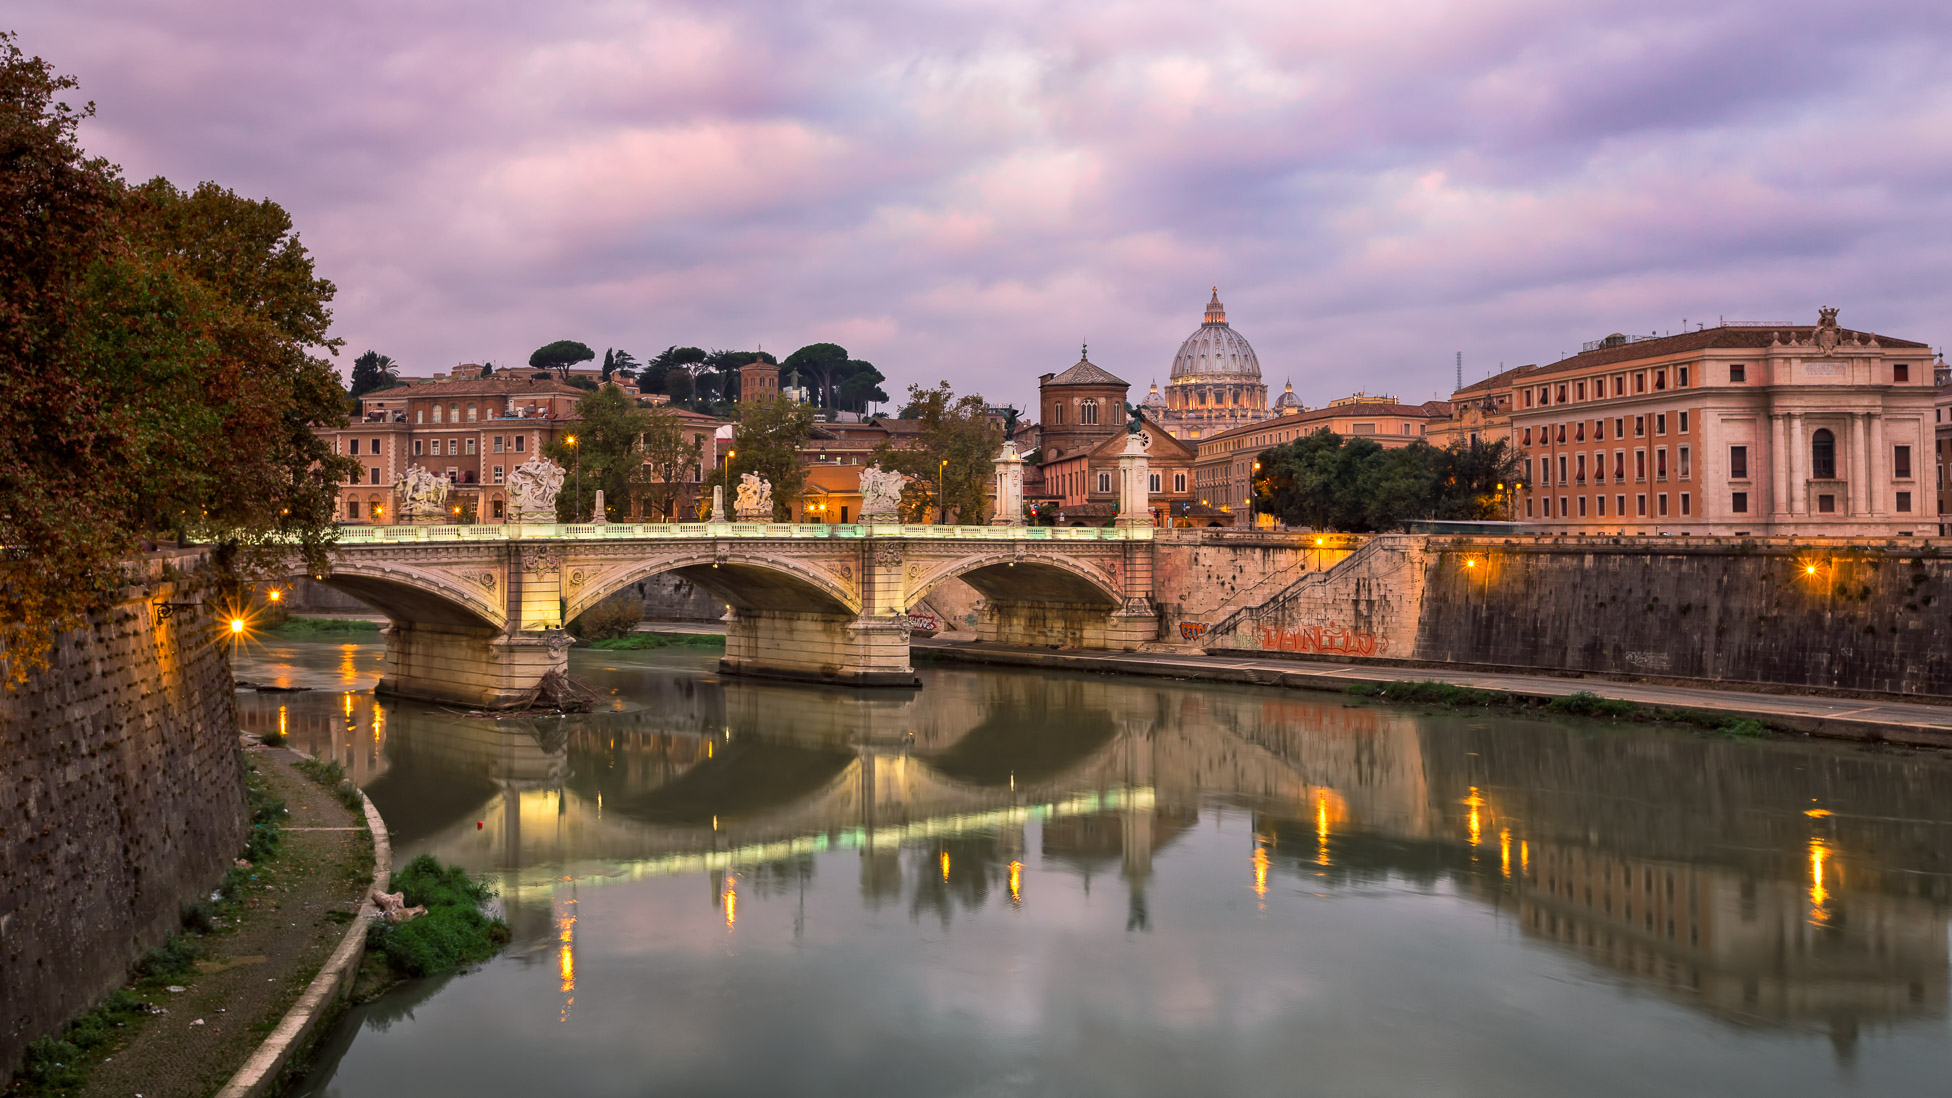 Saint Peter's Cathedral and Vittorio Emmanuele II Bridge in the Morning, Rome, Italy